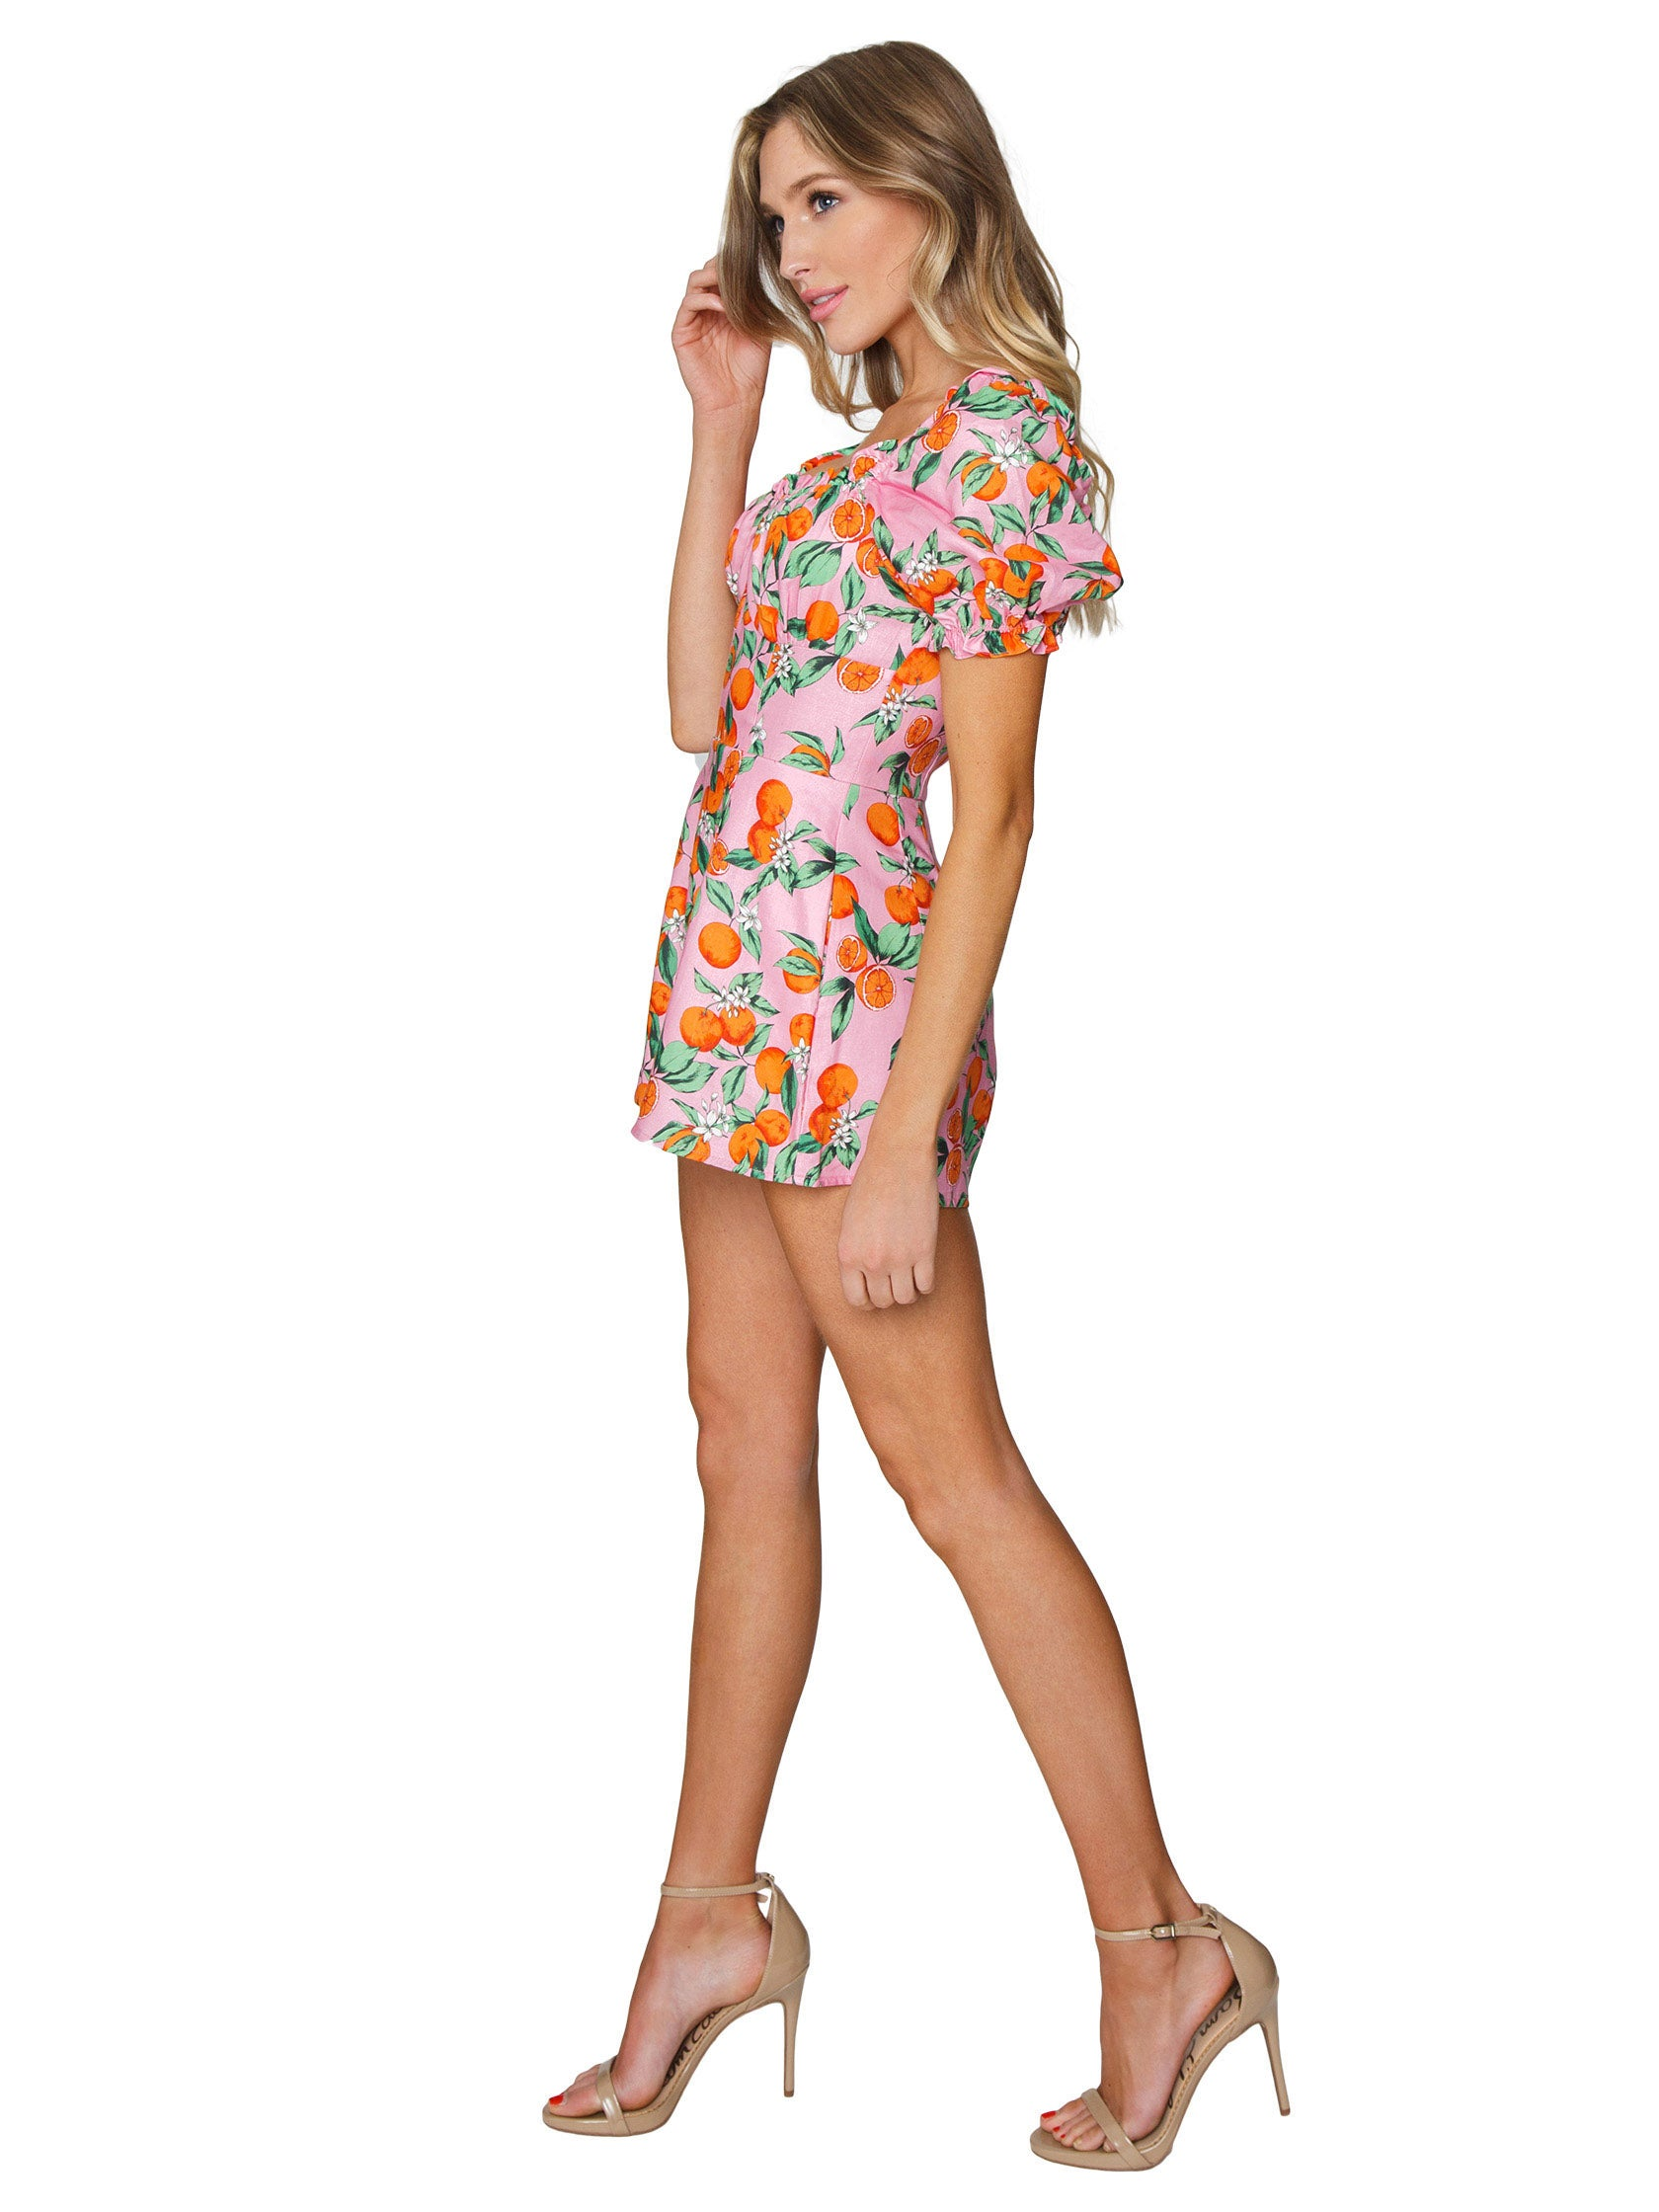 Woman wearing a romper rental from Finders Keepers called Aranciata Playsuit